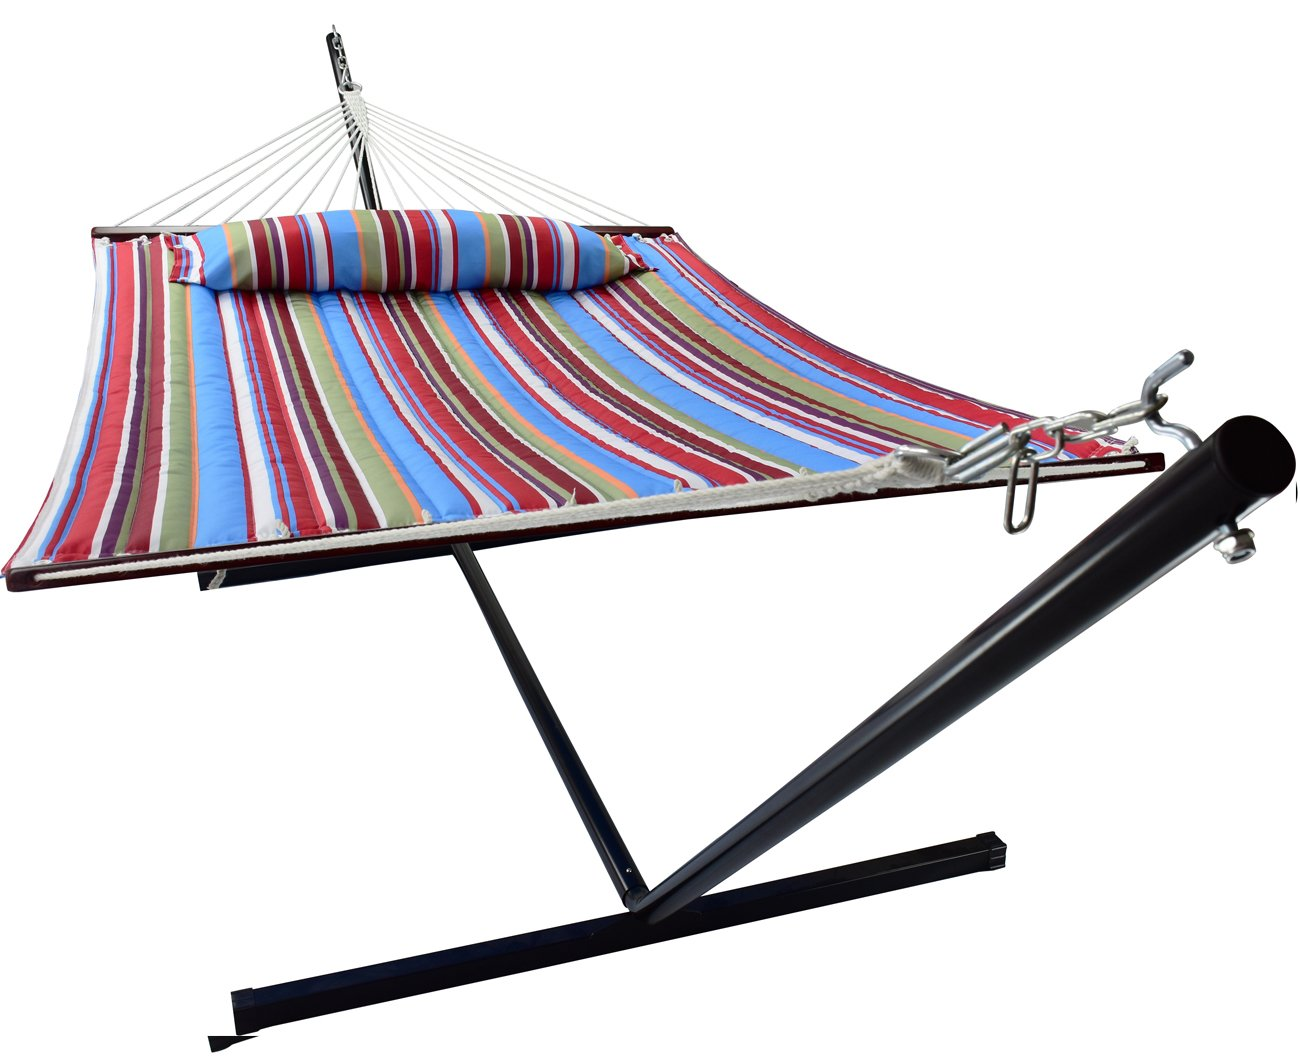 Sorbus Hammock with Spreader Bars and Detachable Pillow